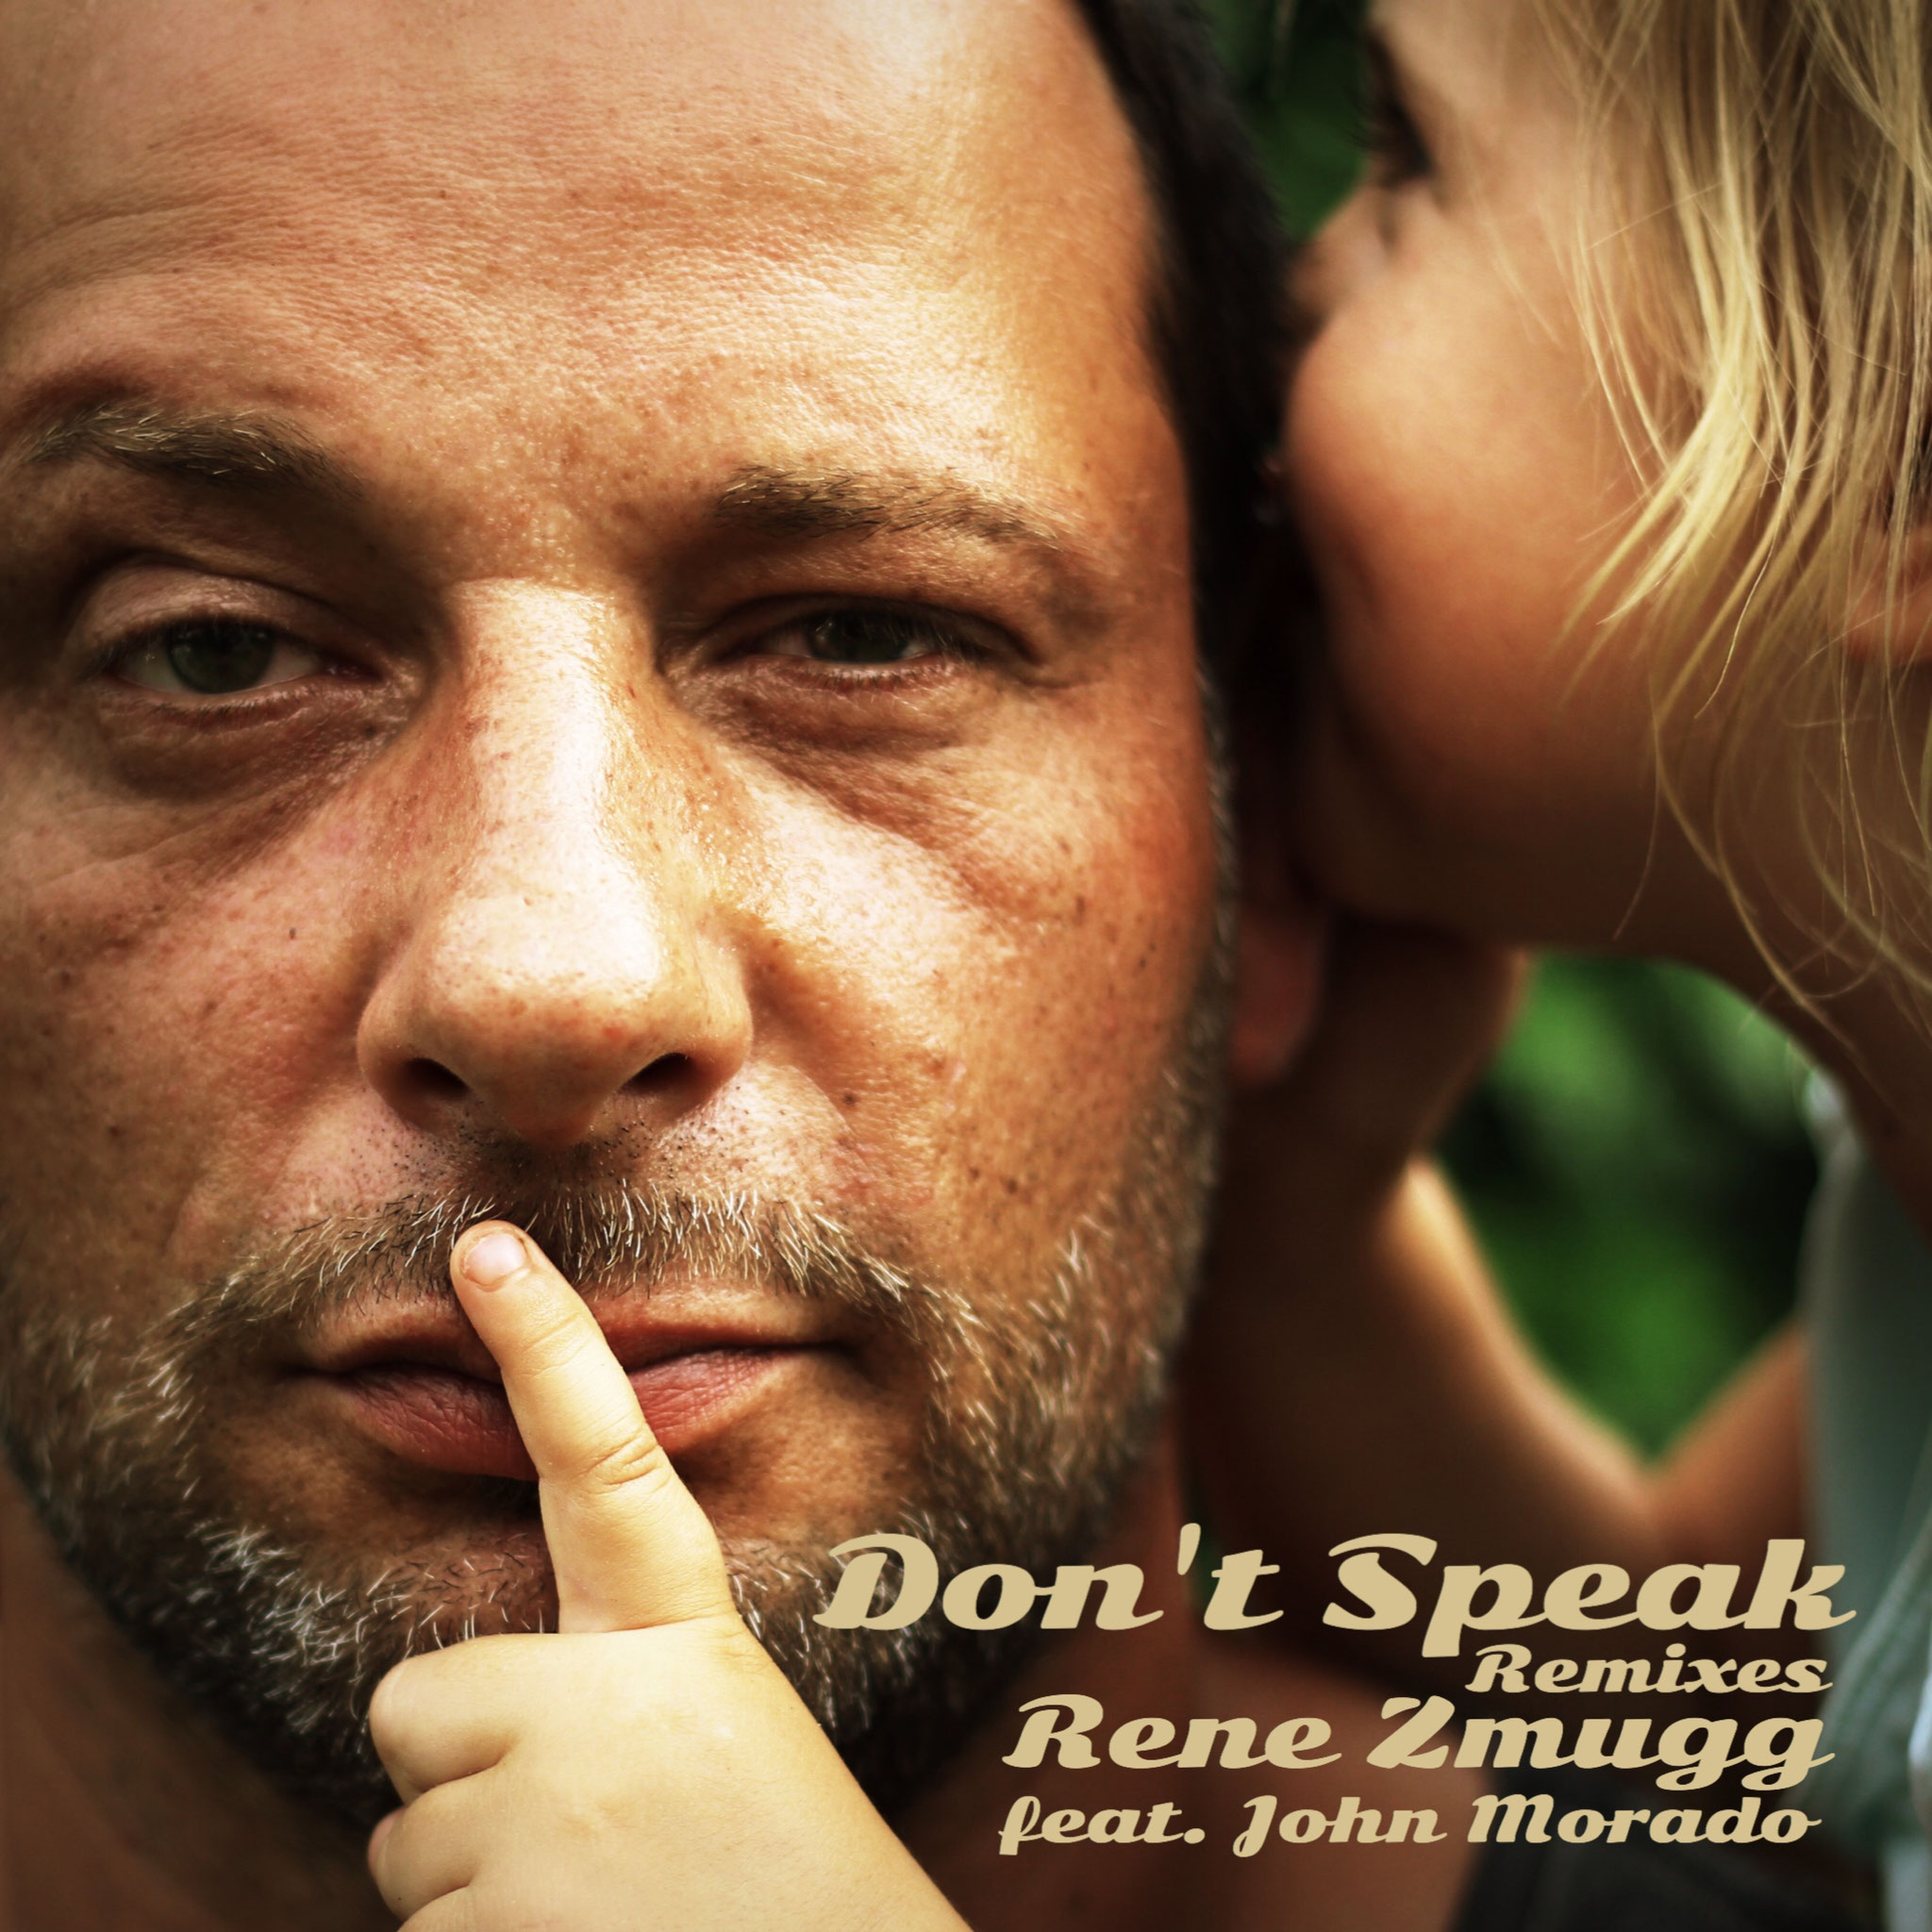 Album - Don't Speak Remixes